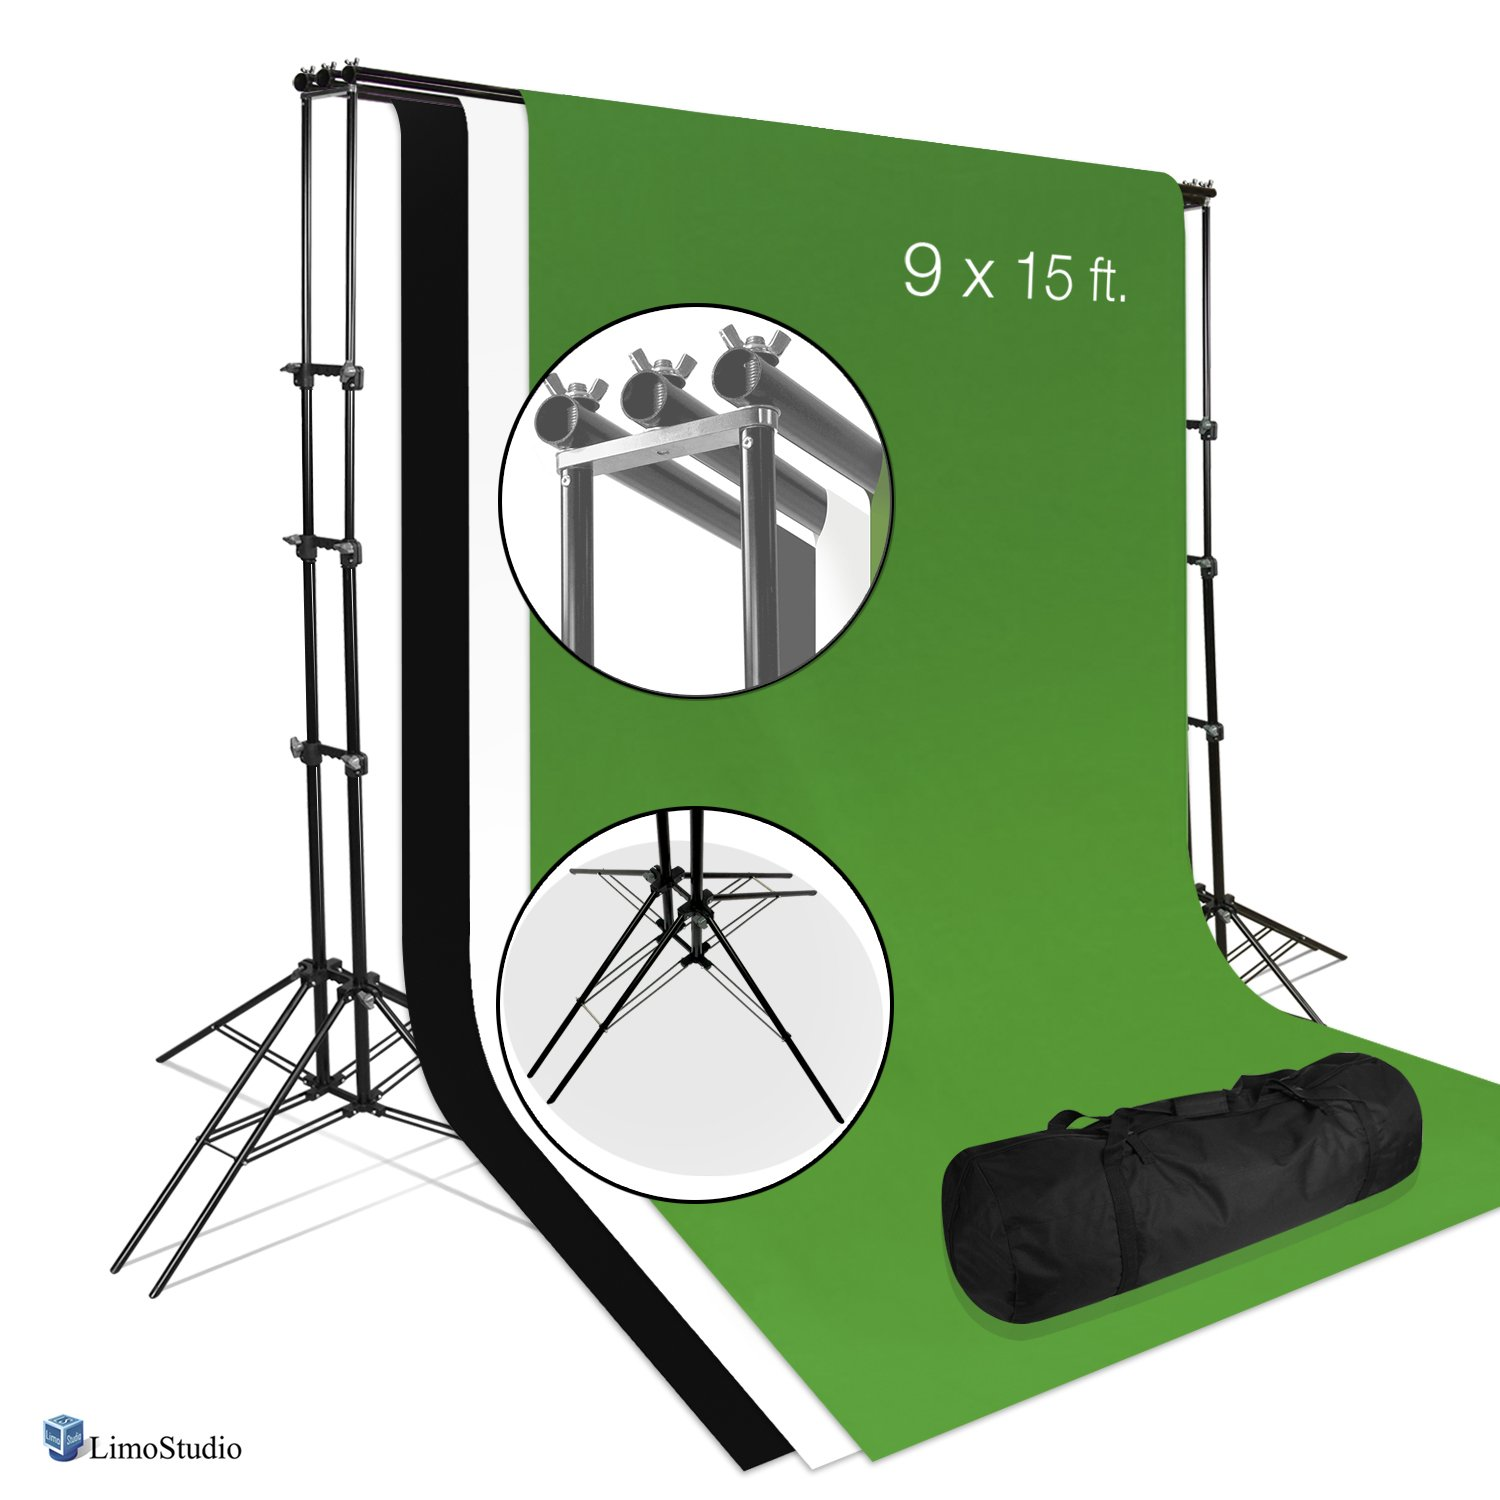 LimoStudio Photo Video Studio 6 Legs Background Stand Backdrop Support System Kit with Carry Bag for Photography, Black, White, Green, Premium Quality Backdrop, AGG2671 by LimoStudio